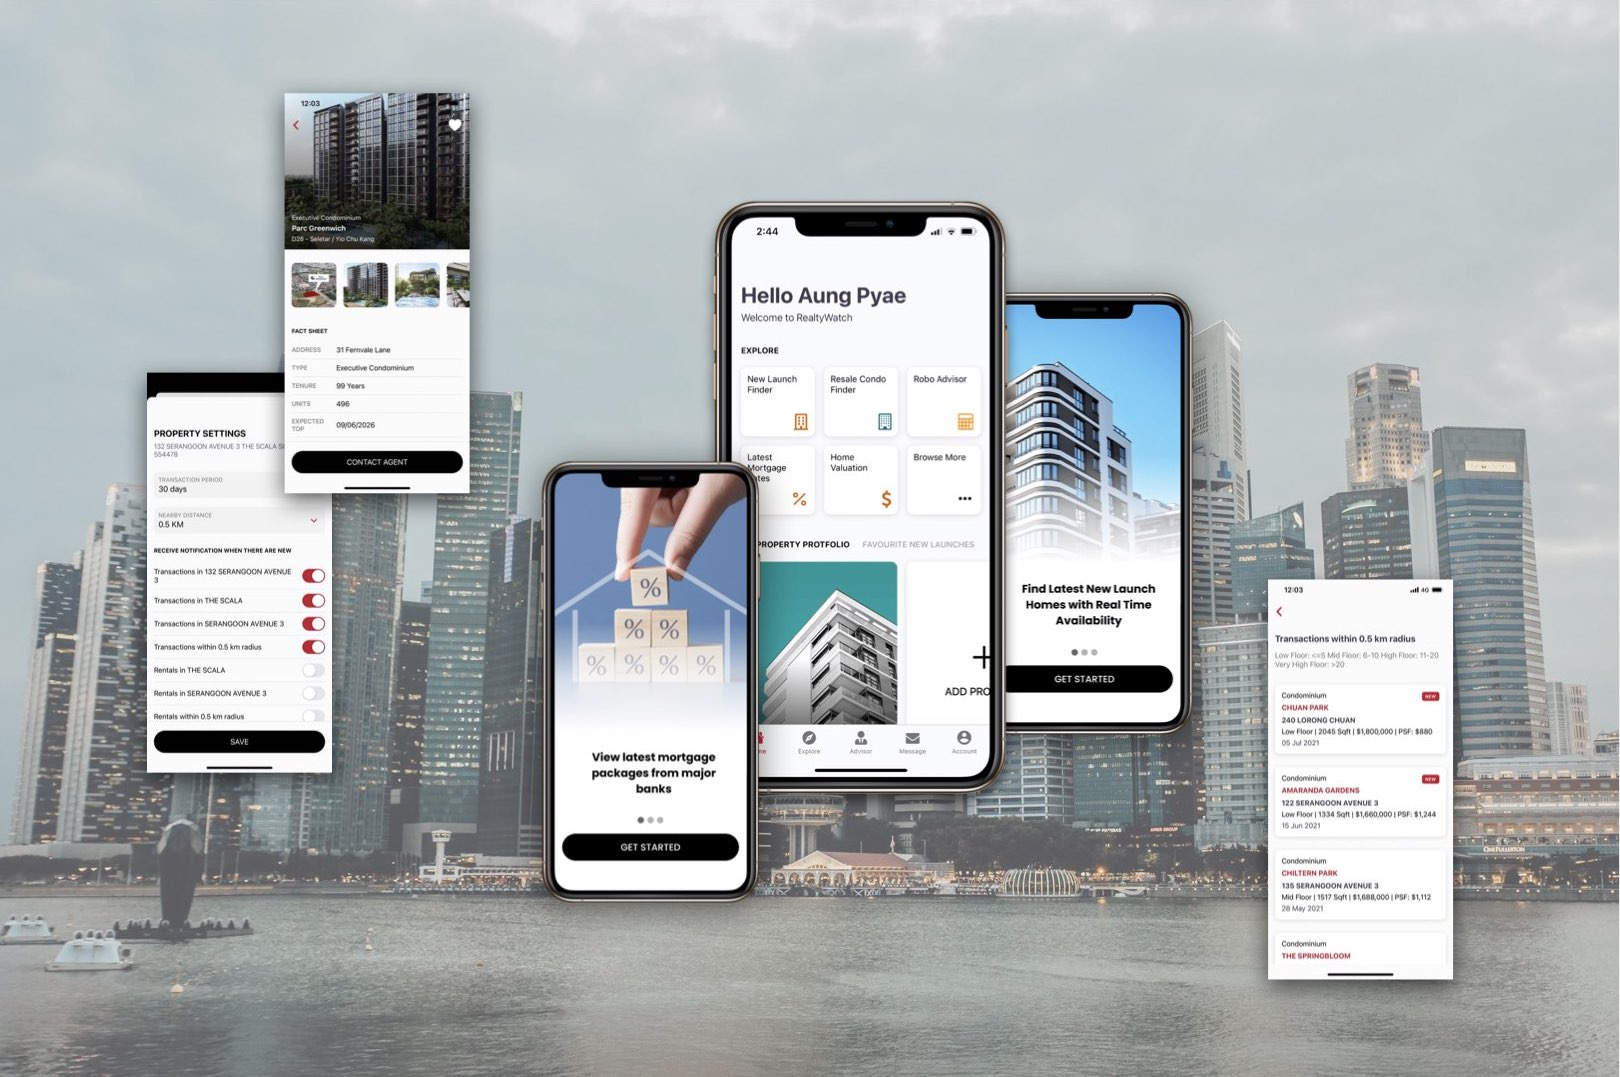 realty-watch-app-singapore-property